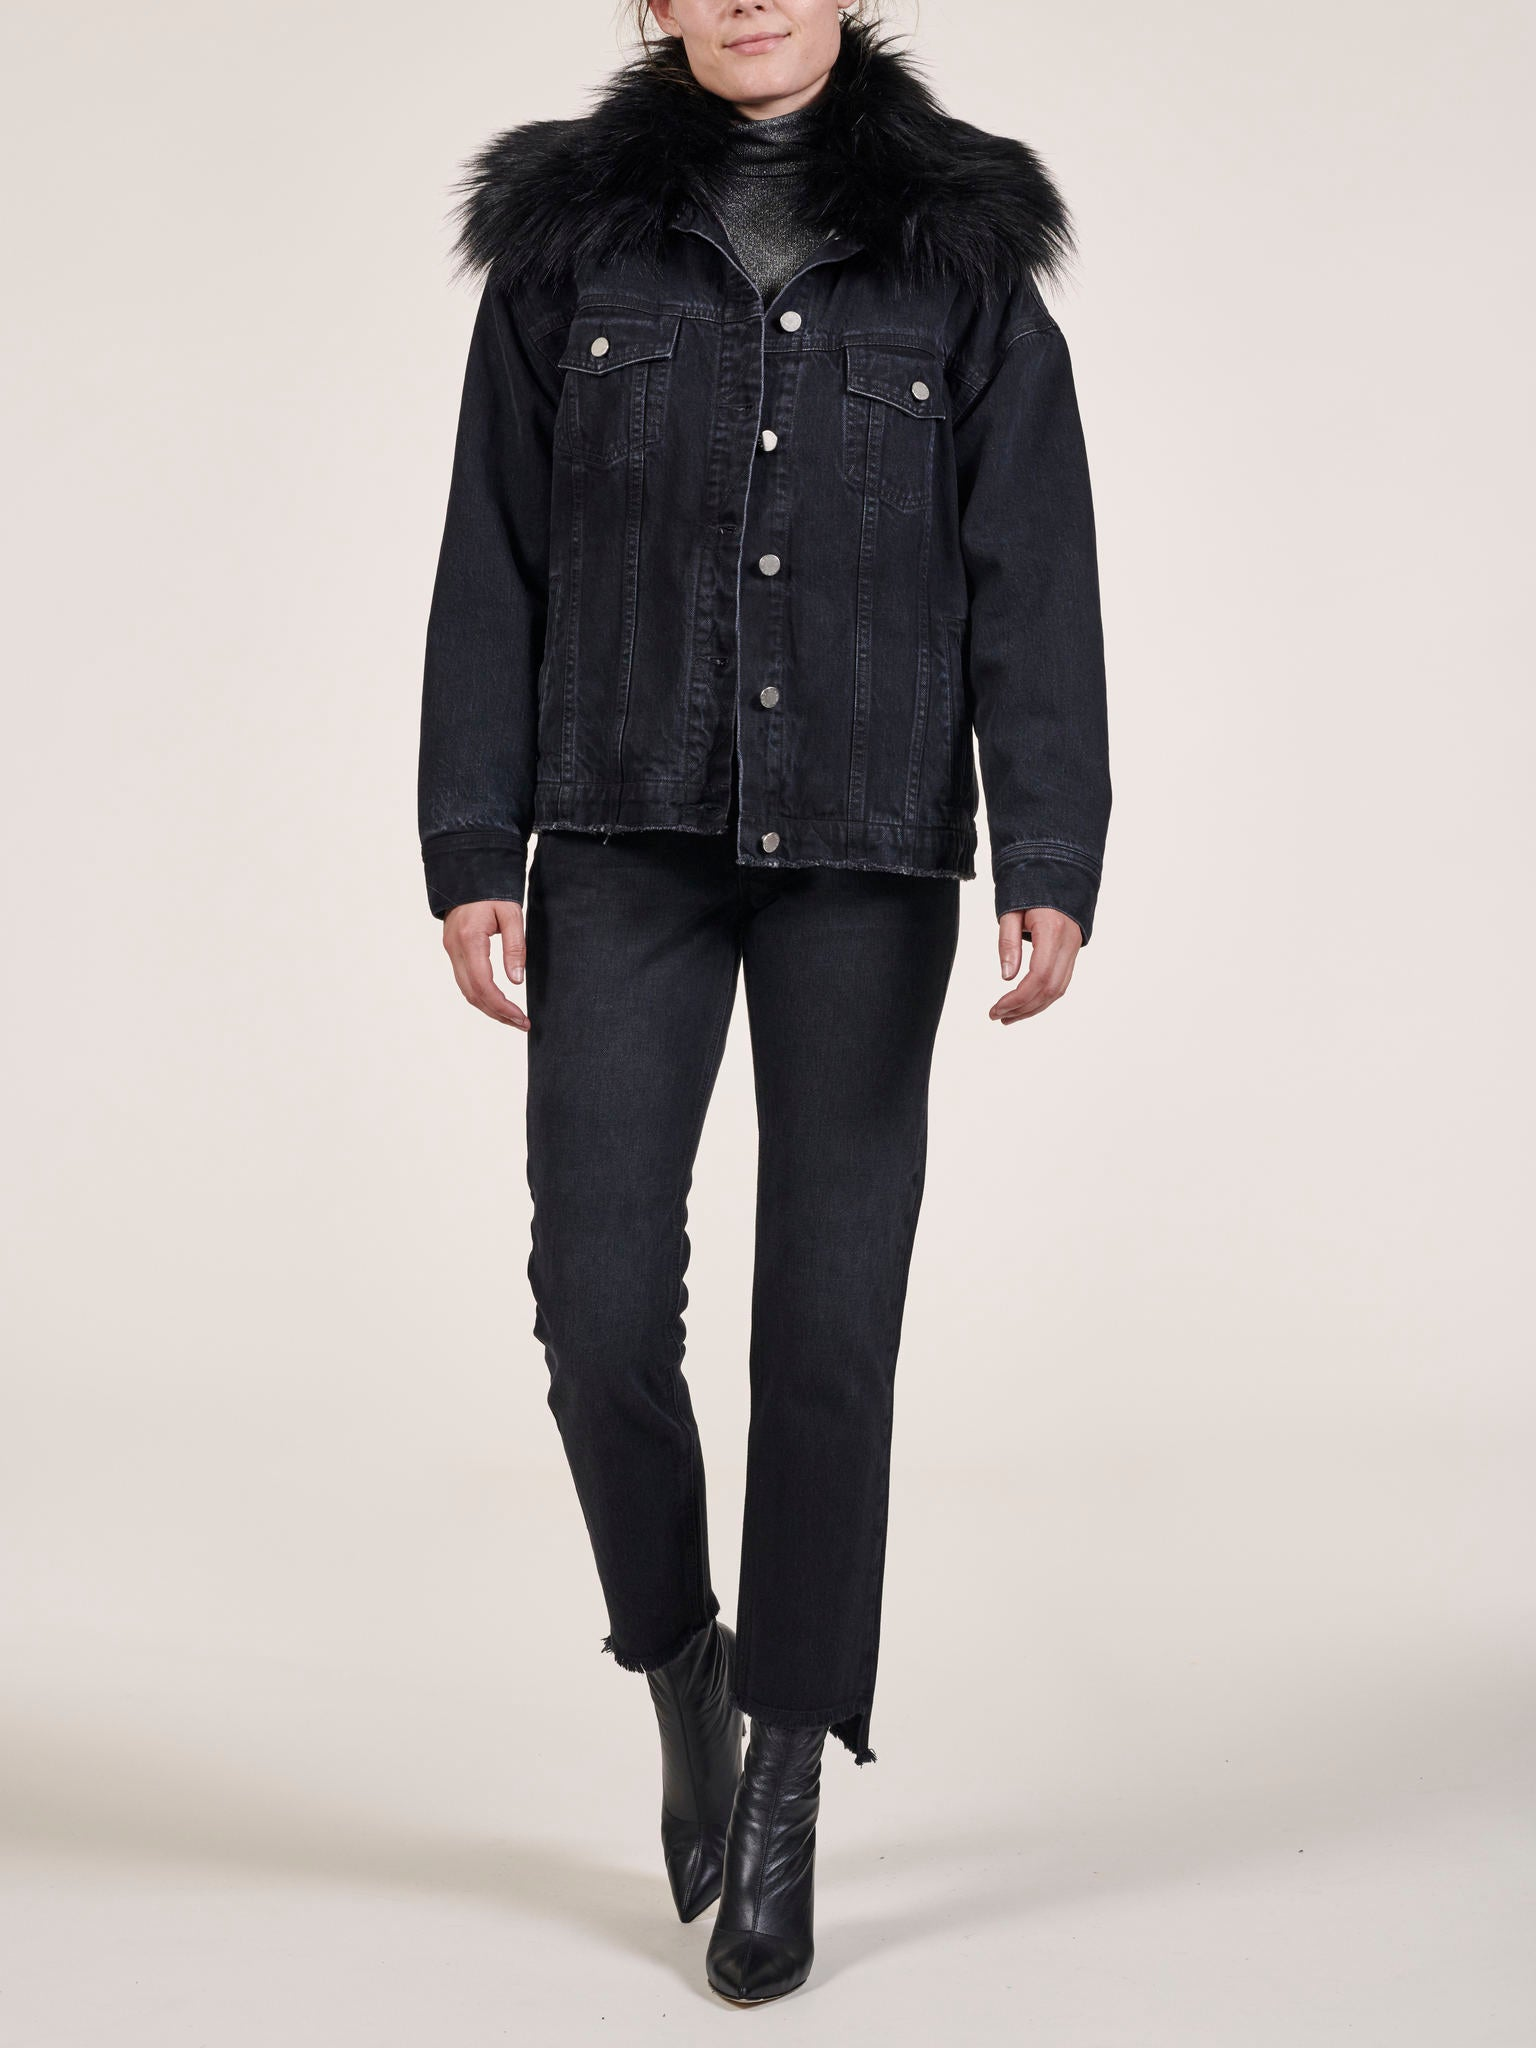 Shearling Lined Black Denim Parka Jacket